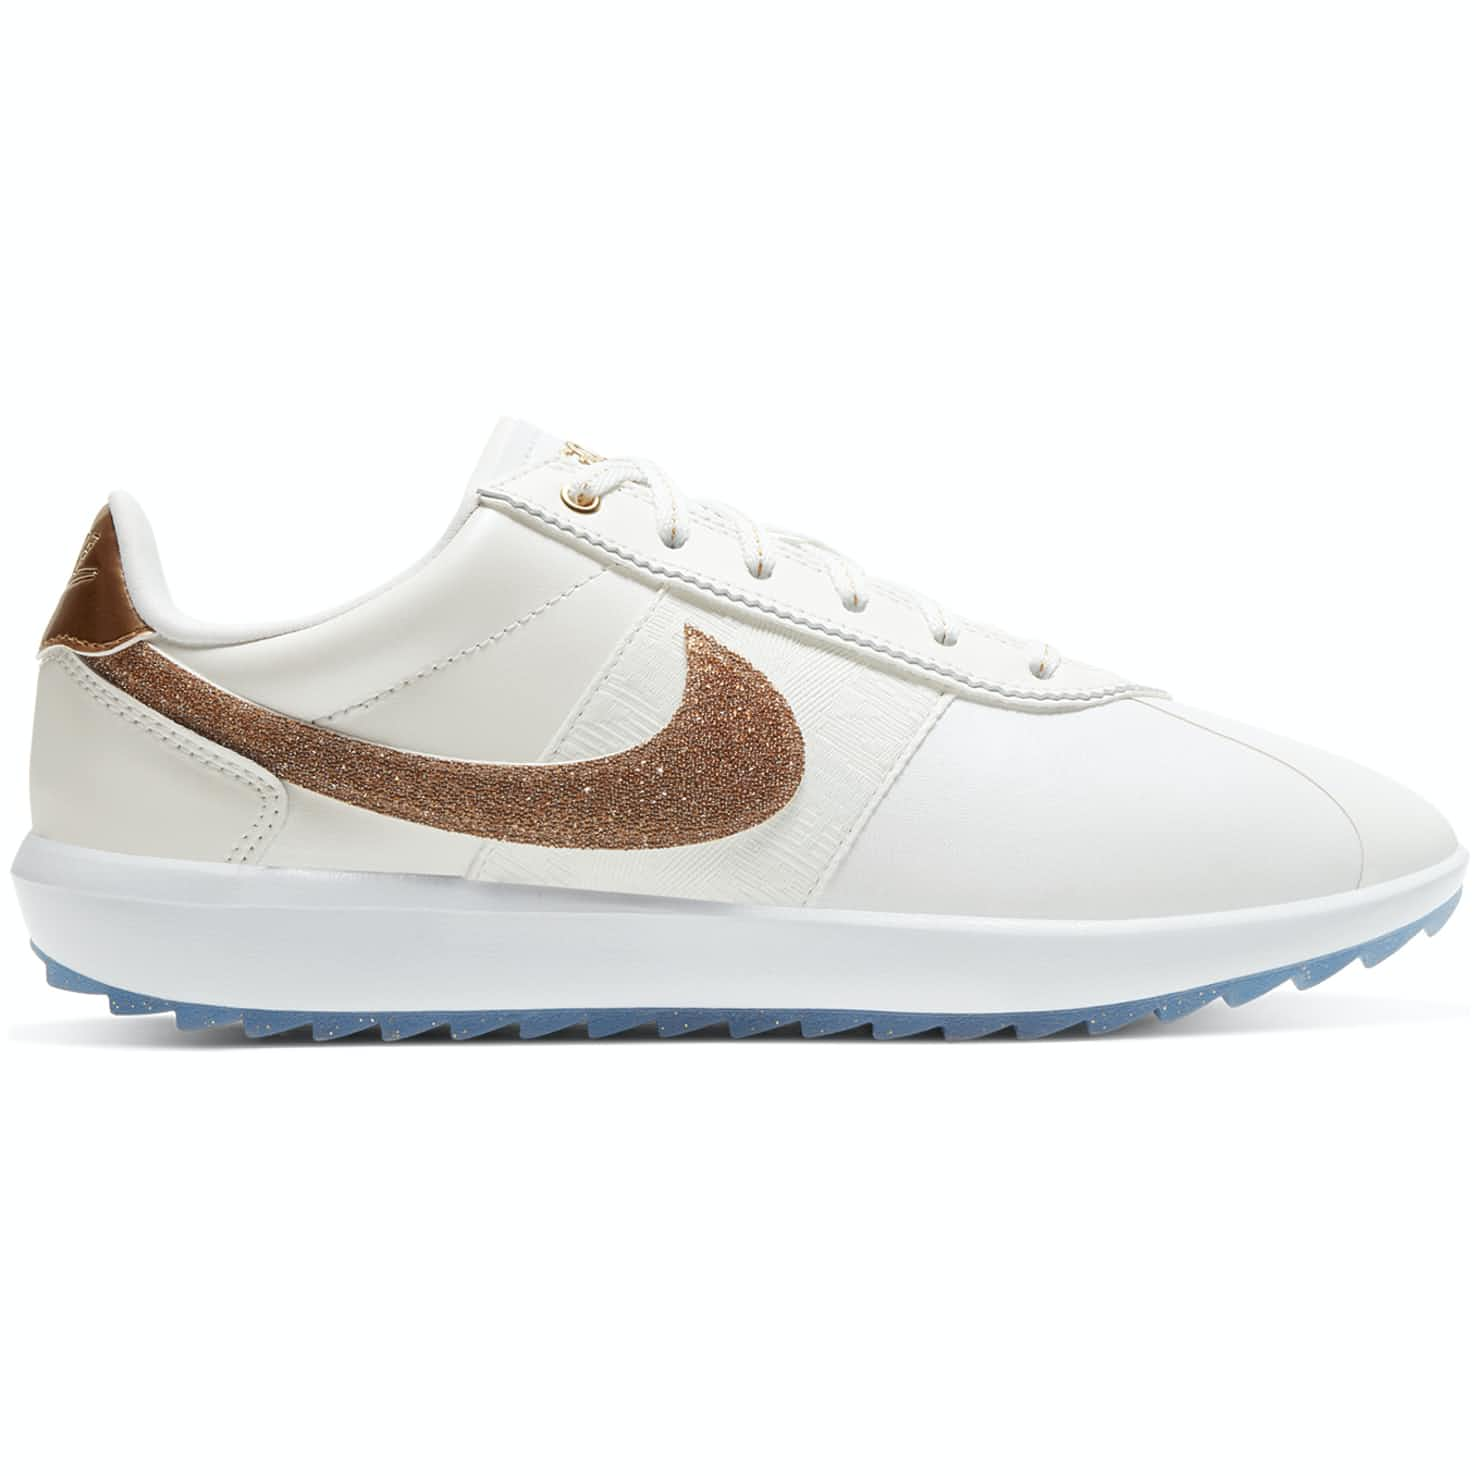 Nike Womens Swarovski Cortez G NRG Summit White/Metallic Gold - 2020